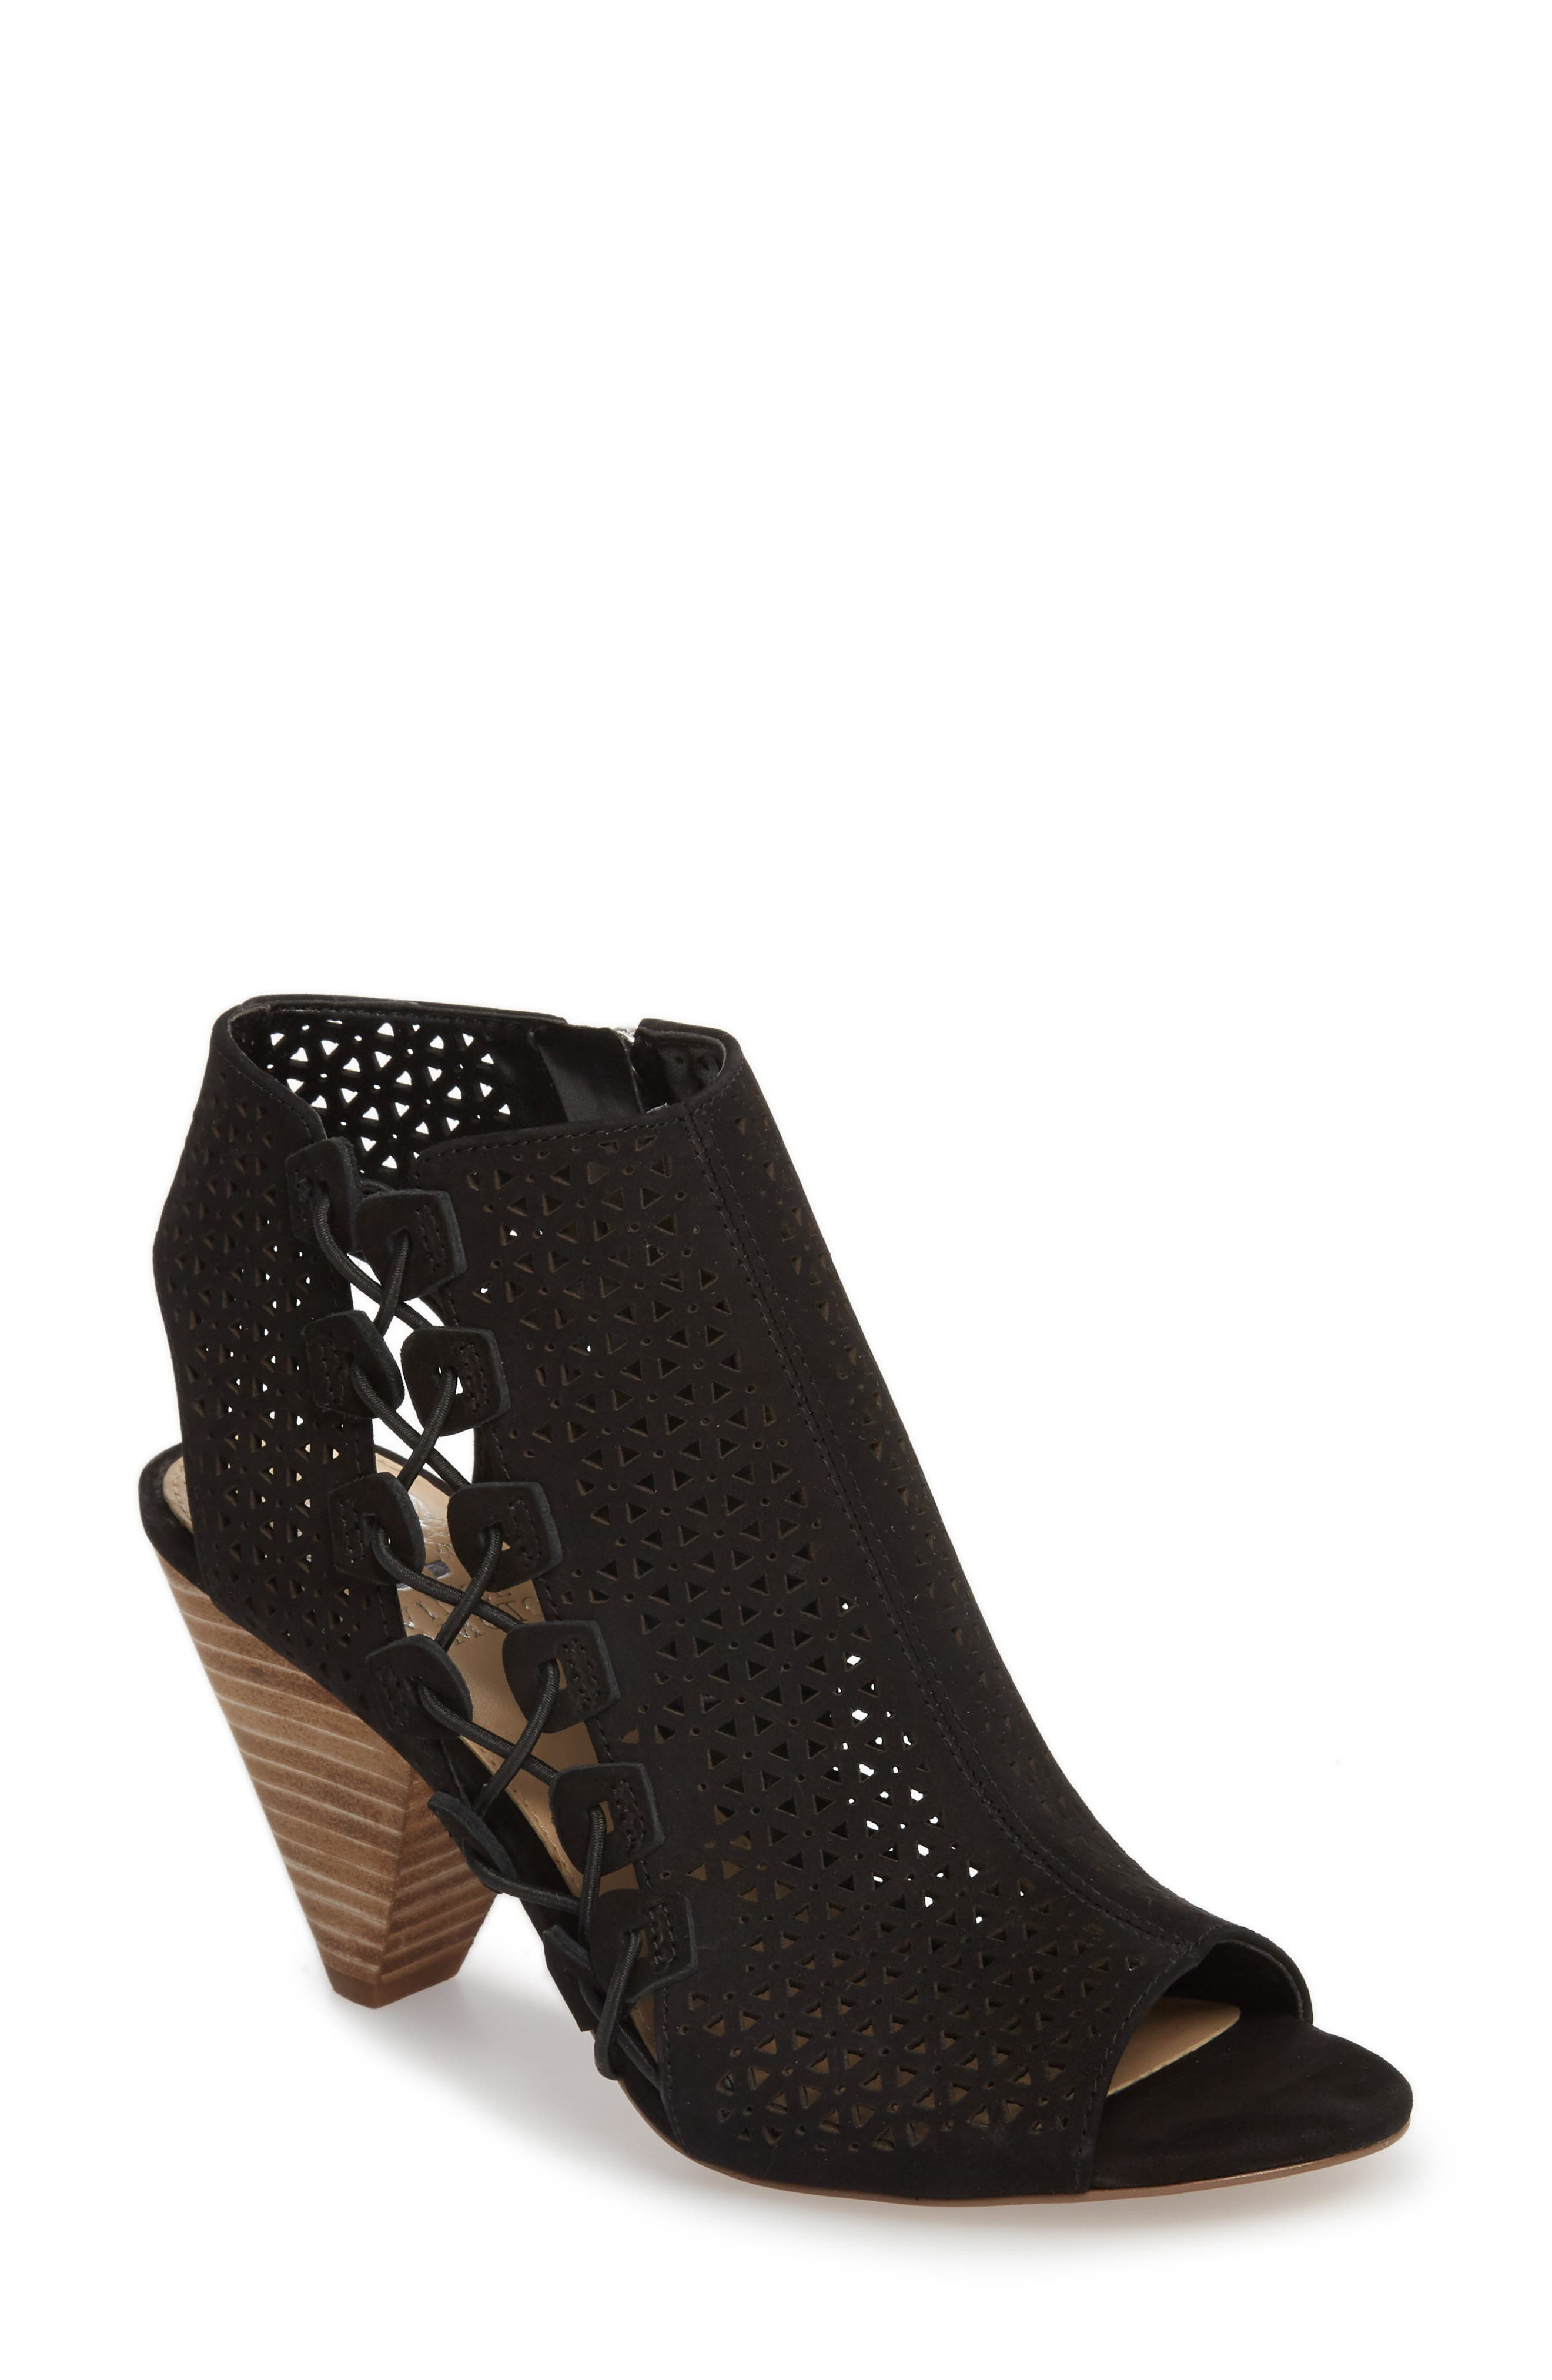 Elison Bootie,                             Main thumbnail 1, color,                             Black Leather